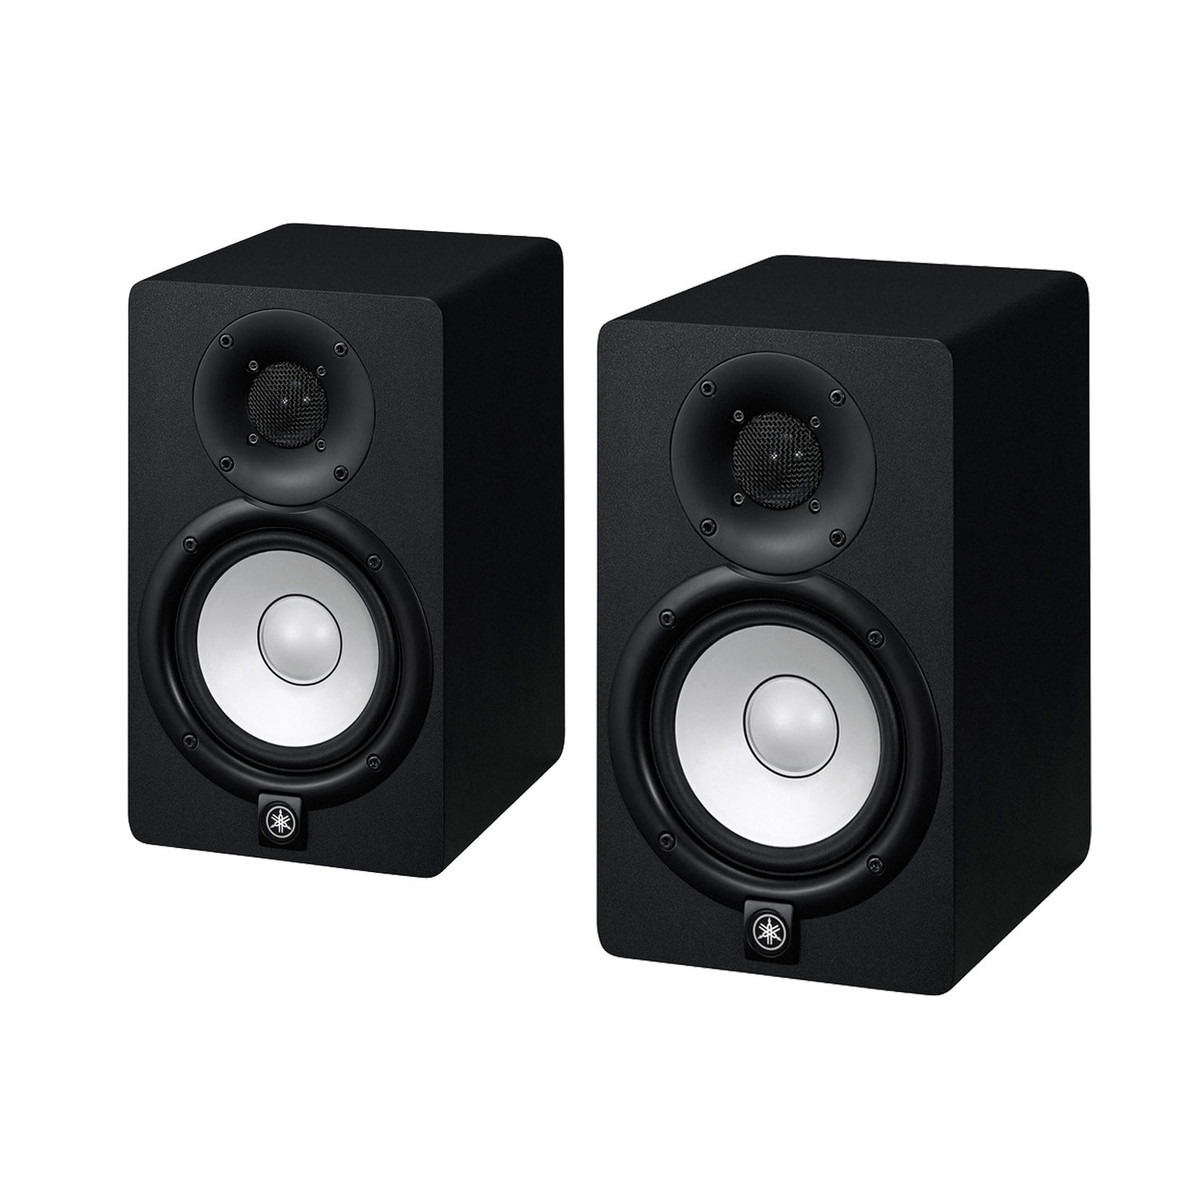 yamaha hs5 active studio monitors pair with free stands at. Black Bedroom Furniture Sets. Home Design Ideas